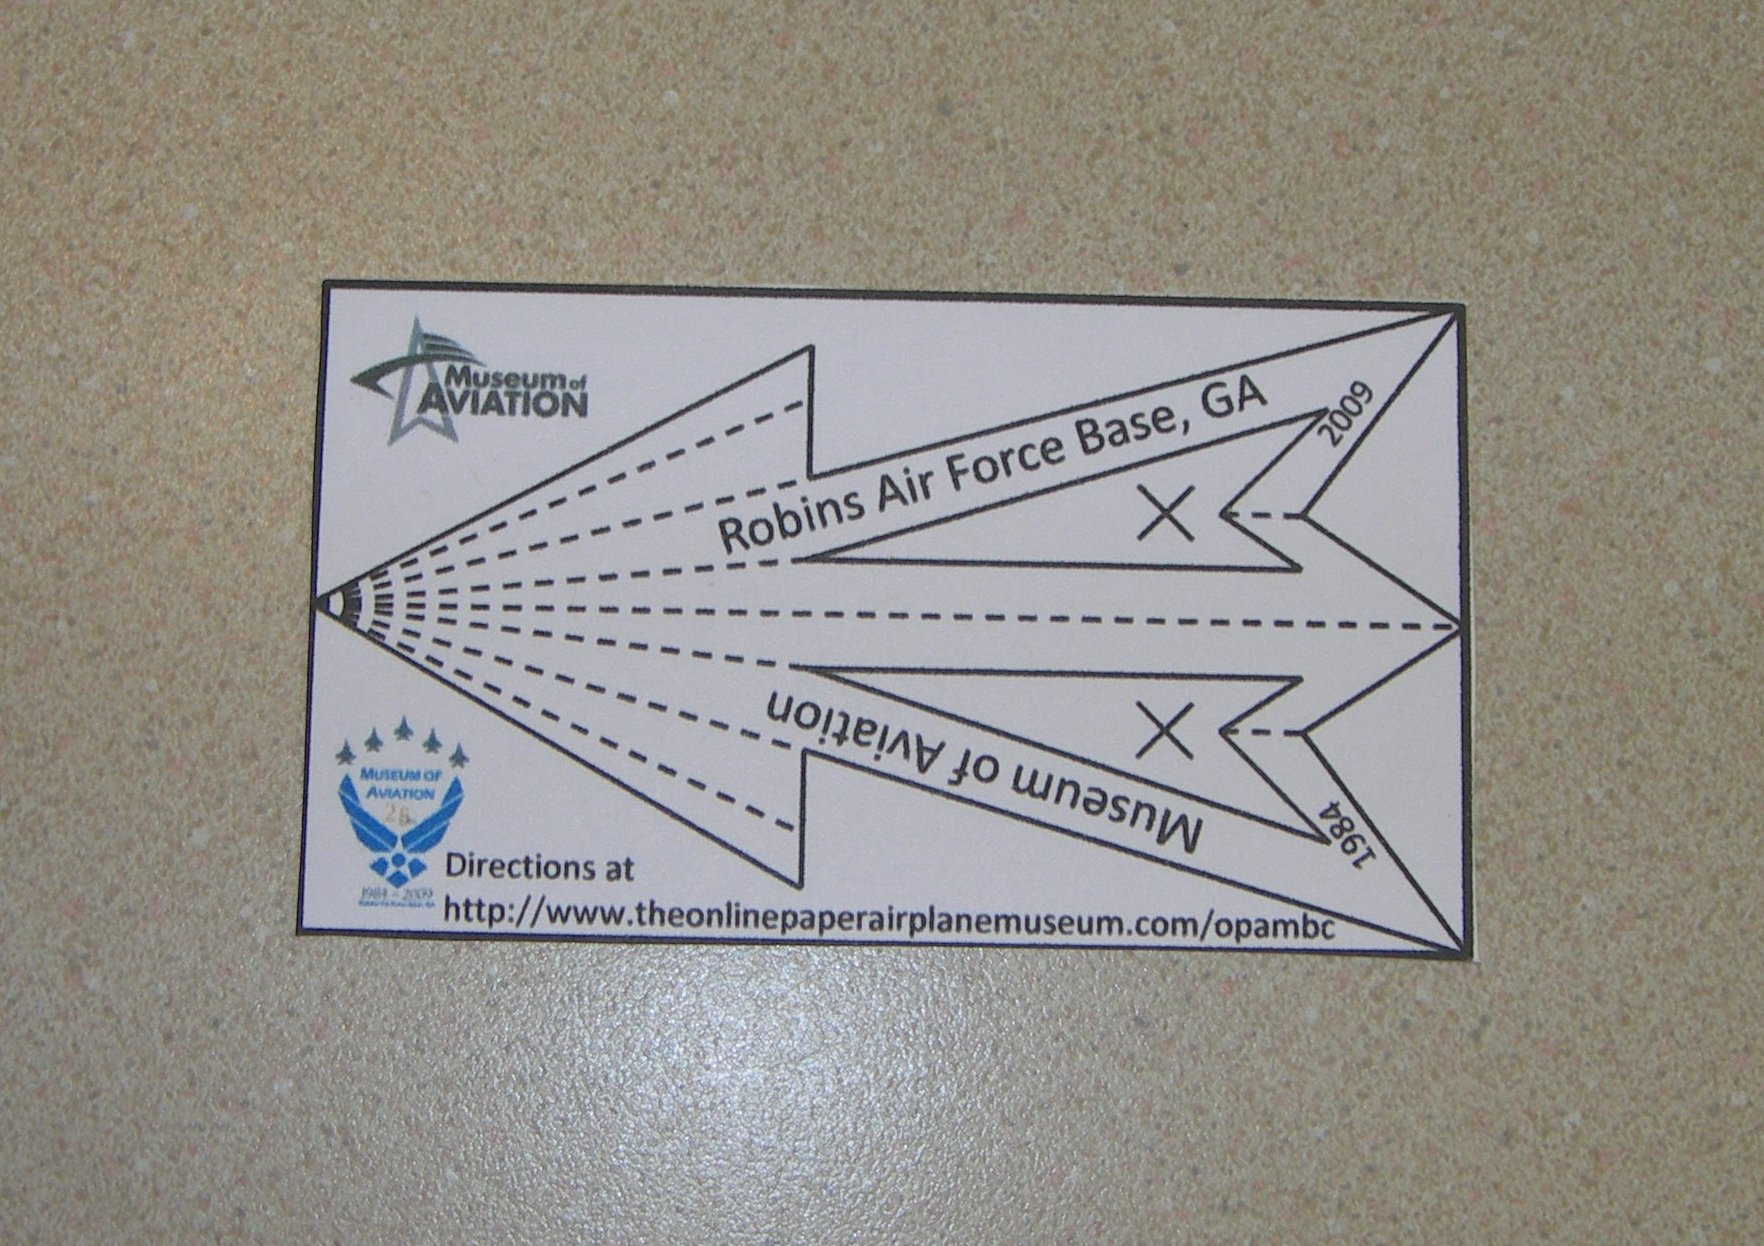 Robins Air Force Base, Business Card 1, The Online Paper Airplane Museum